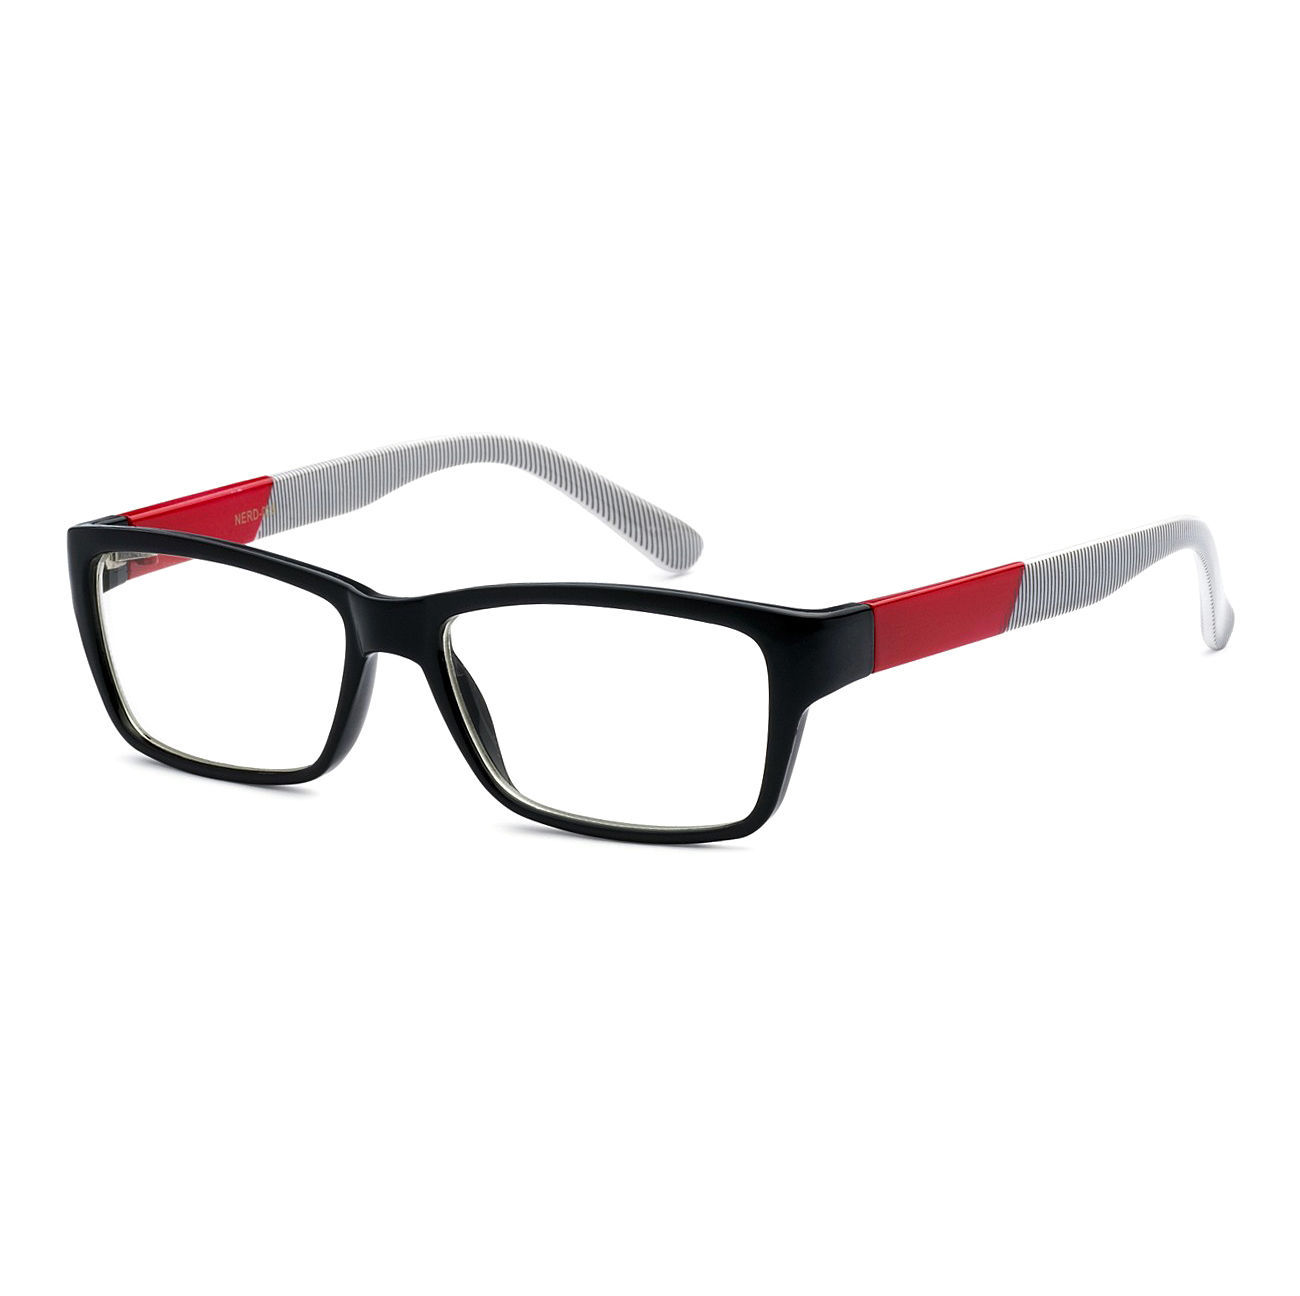 NERD Rectangle Designer Unisex Frame Smart Clear Lens Eye ...